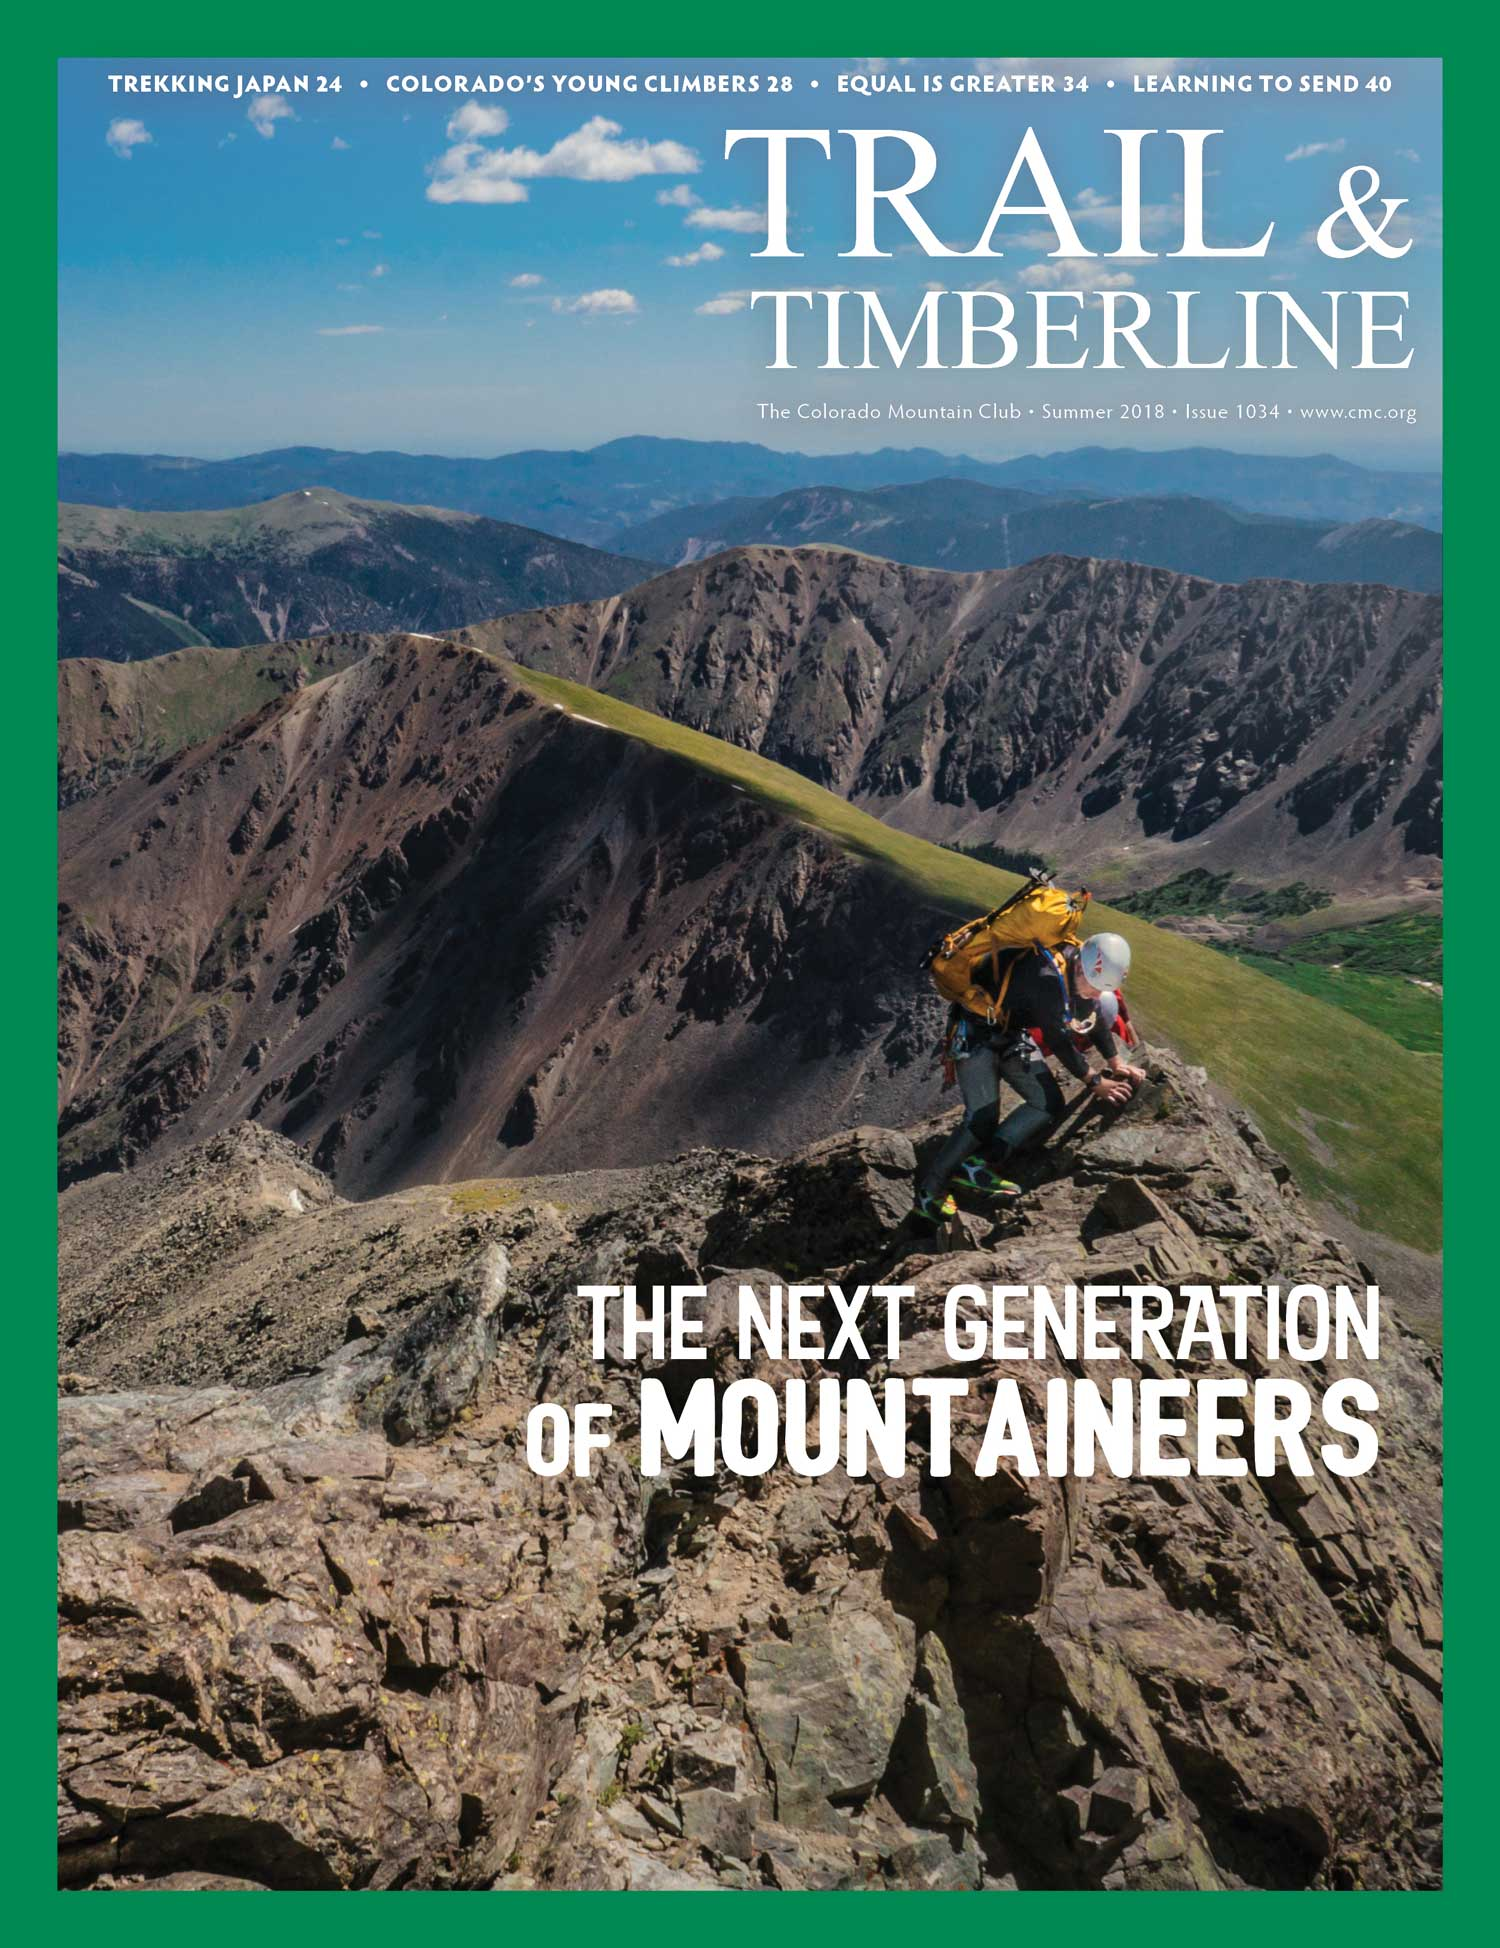 Trail & Timberline Summer 2018